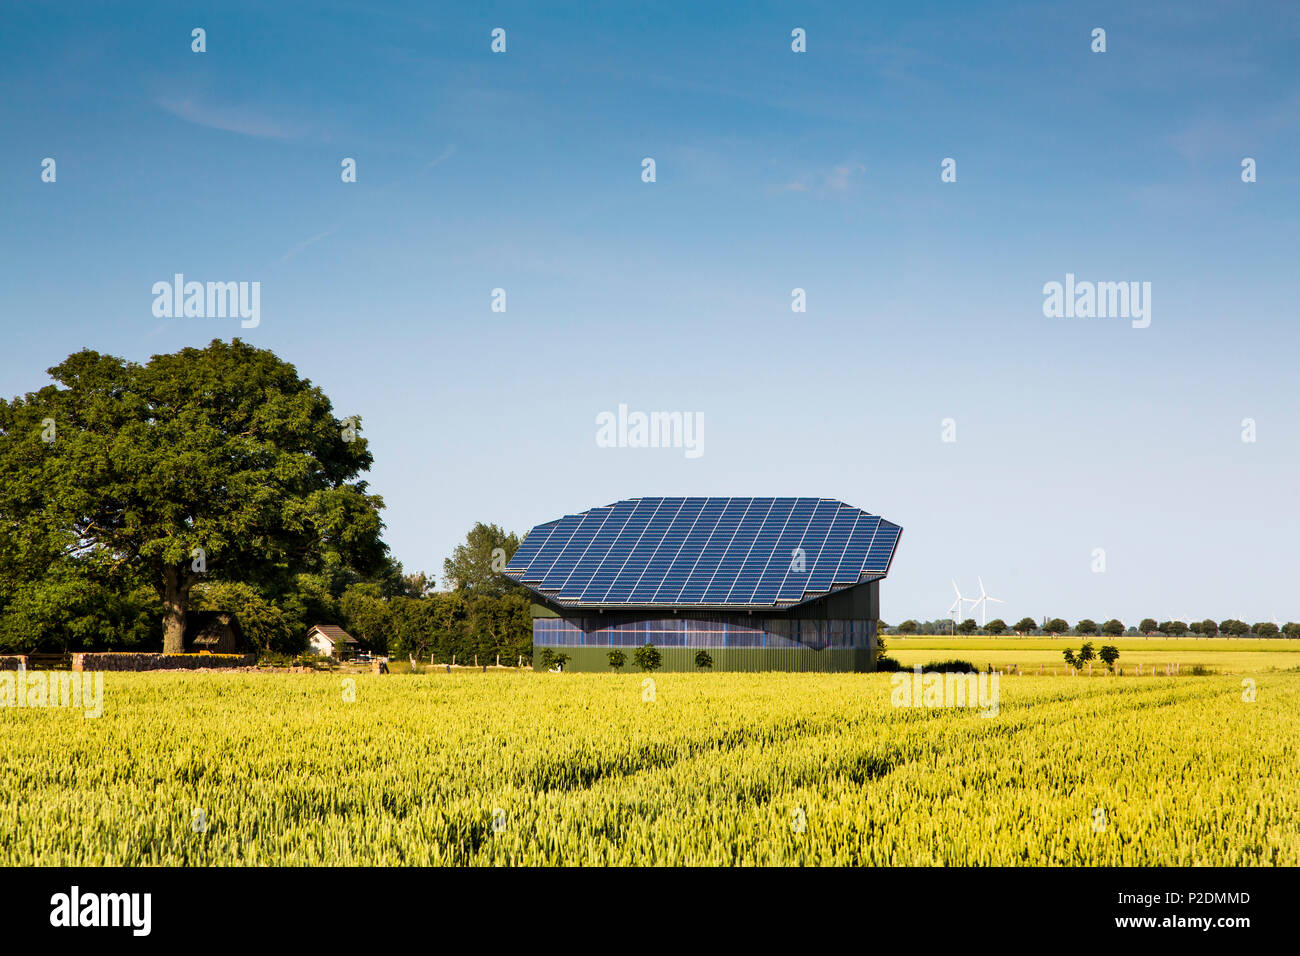 Solar panels on a stable roof, Baltic Coast, Schleswig-Holstein, Germany - Stock Image